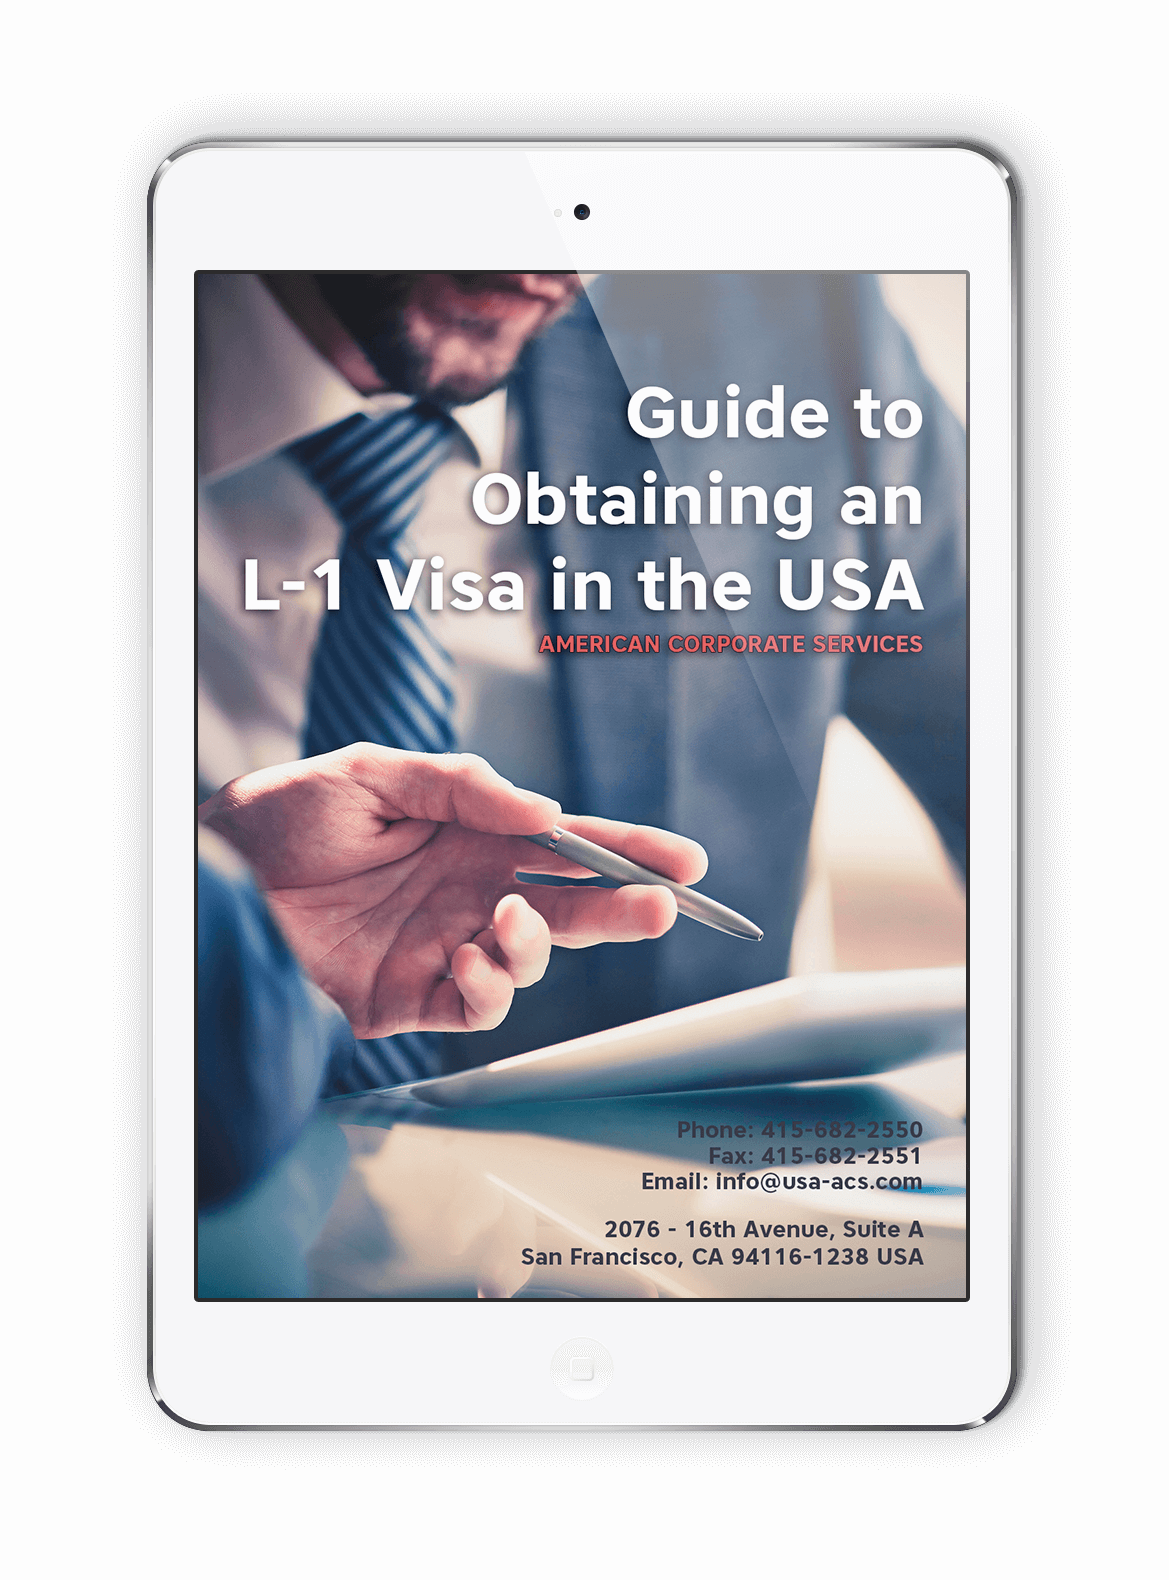 Guide to Obtaining an L-1 Visa in the USA